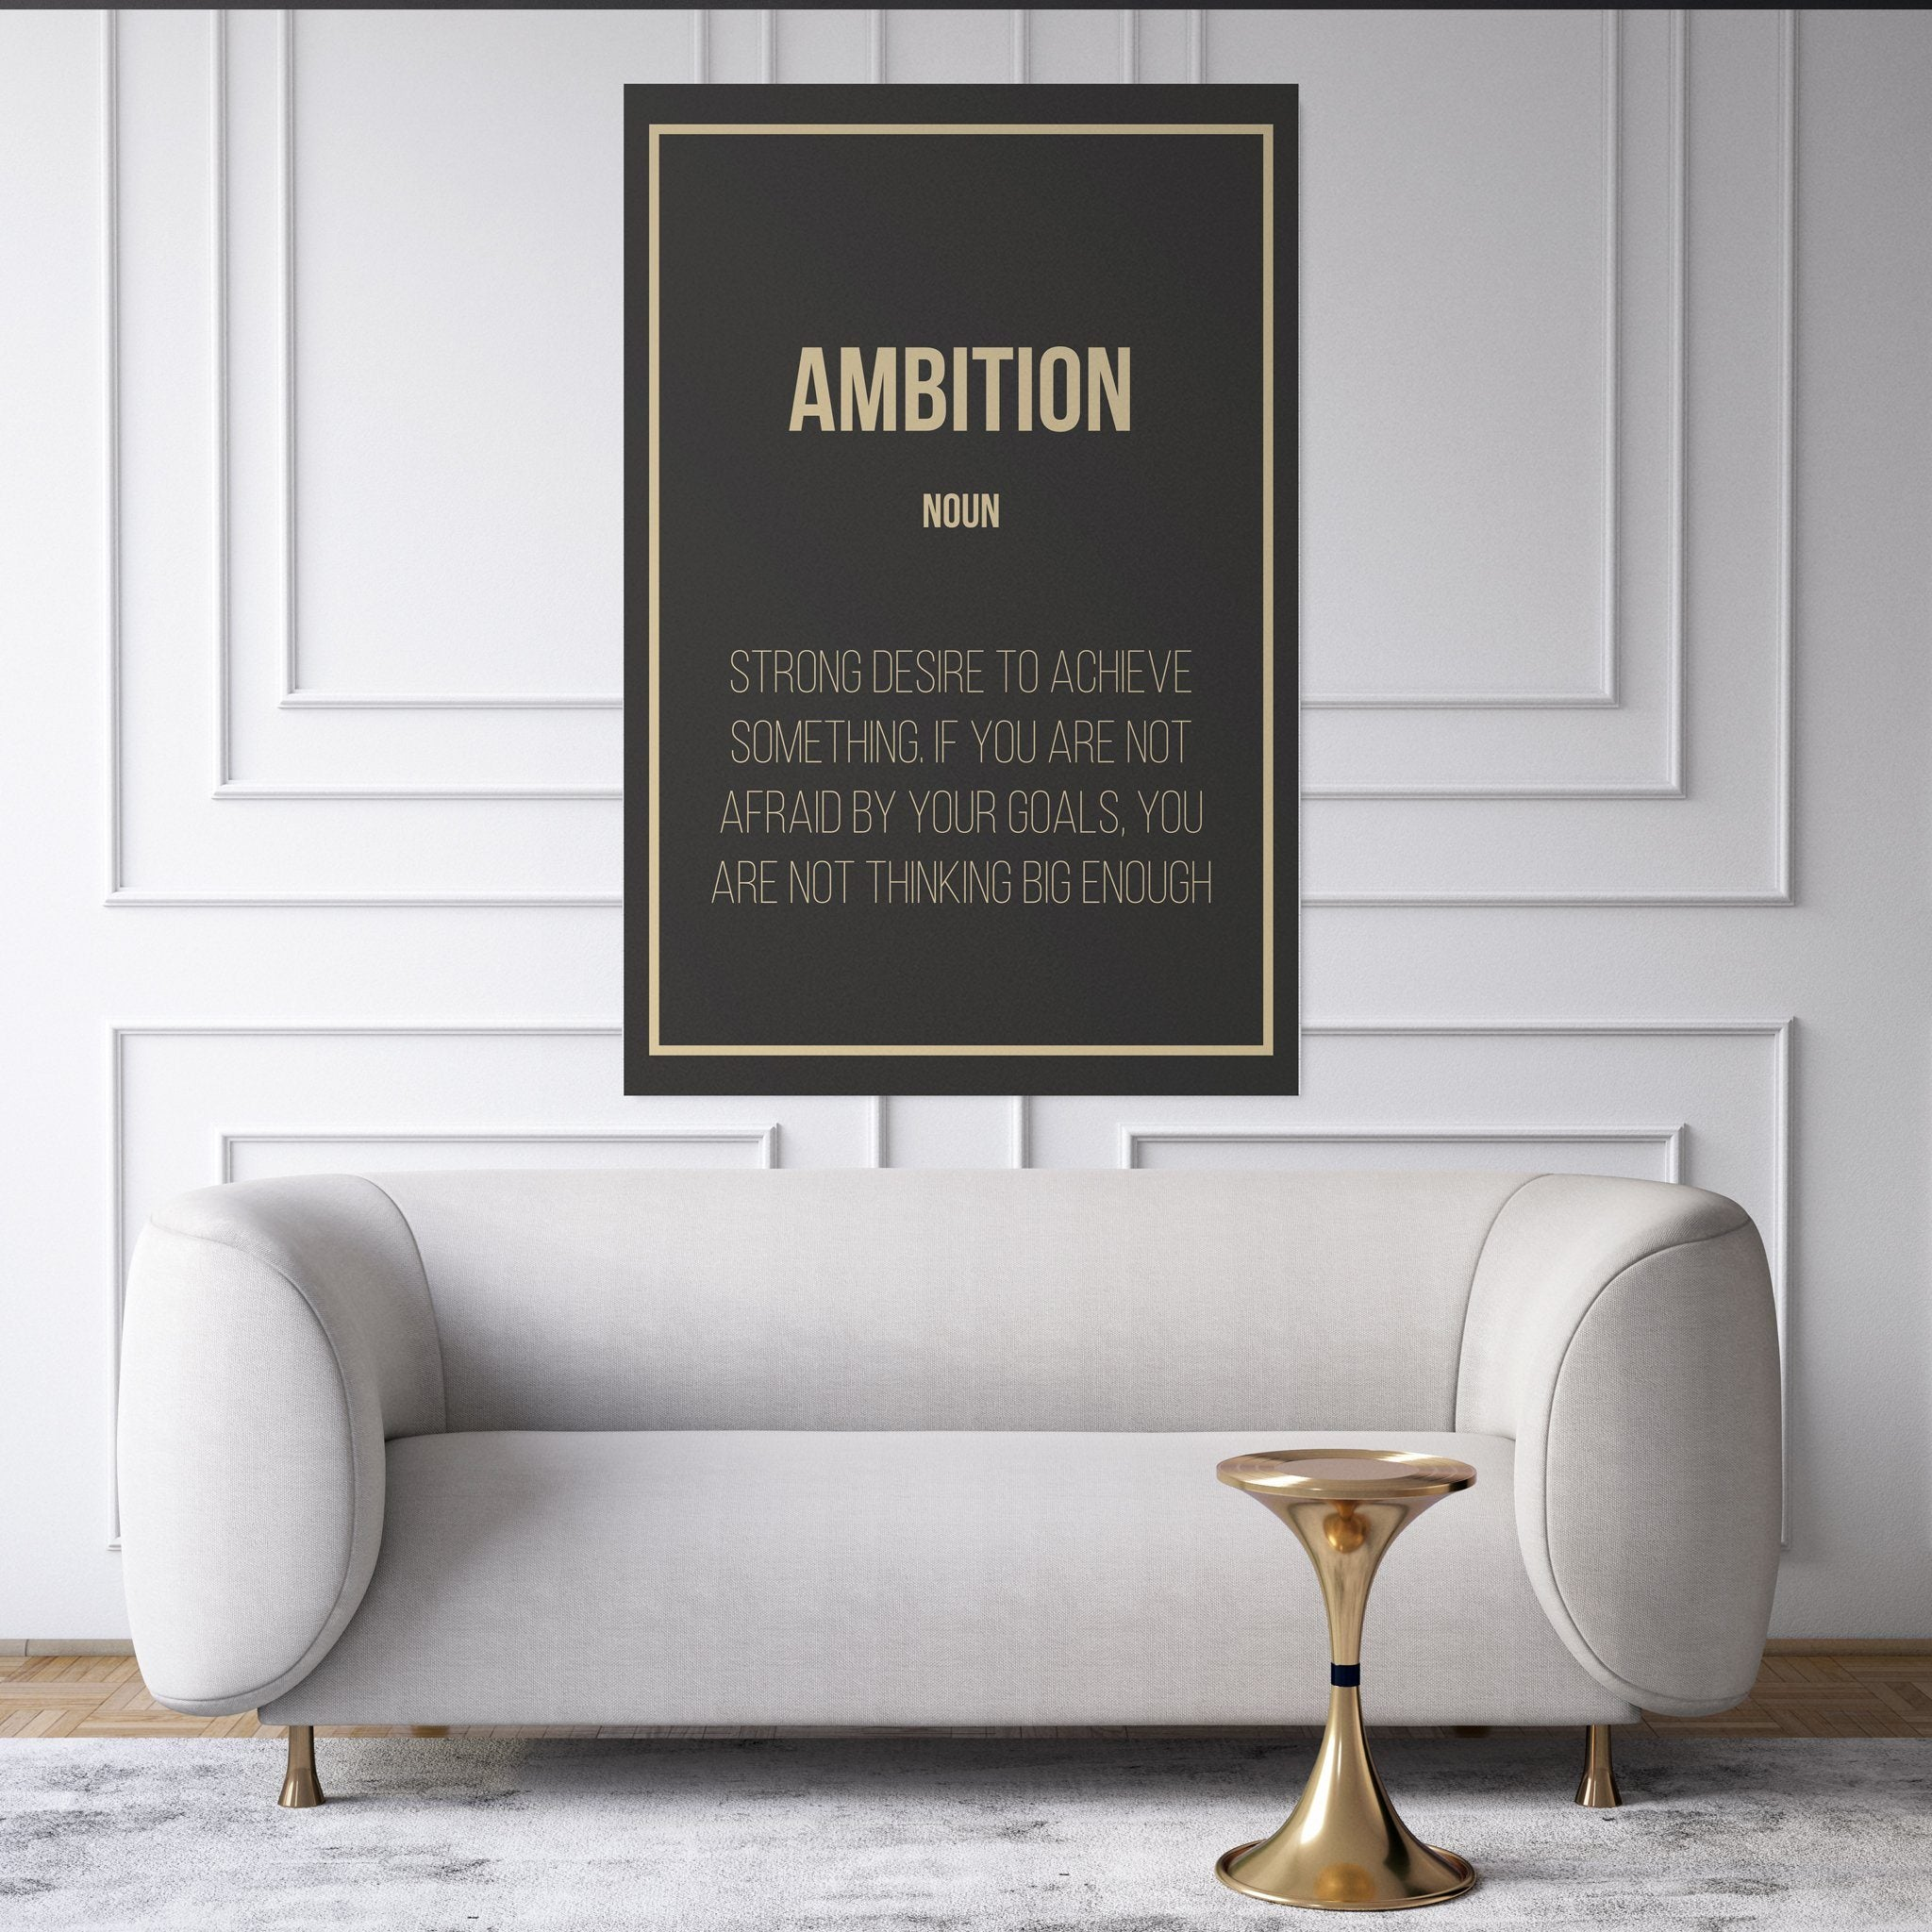 Ambition - Definition entrepreneur hanging in a living room